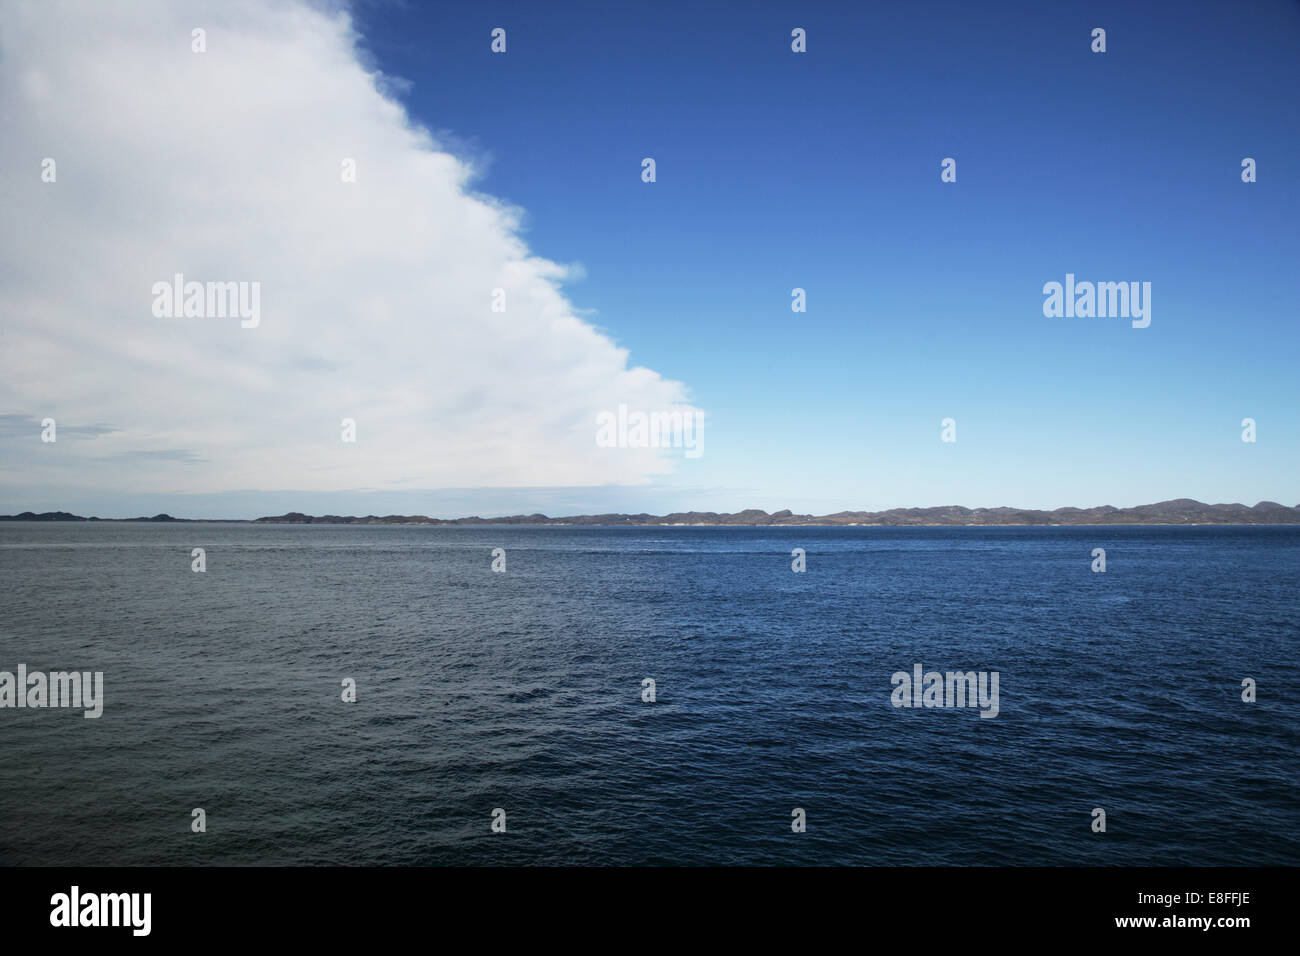 Cloud moving across sky, Greenland Stock Photo